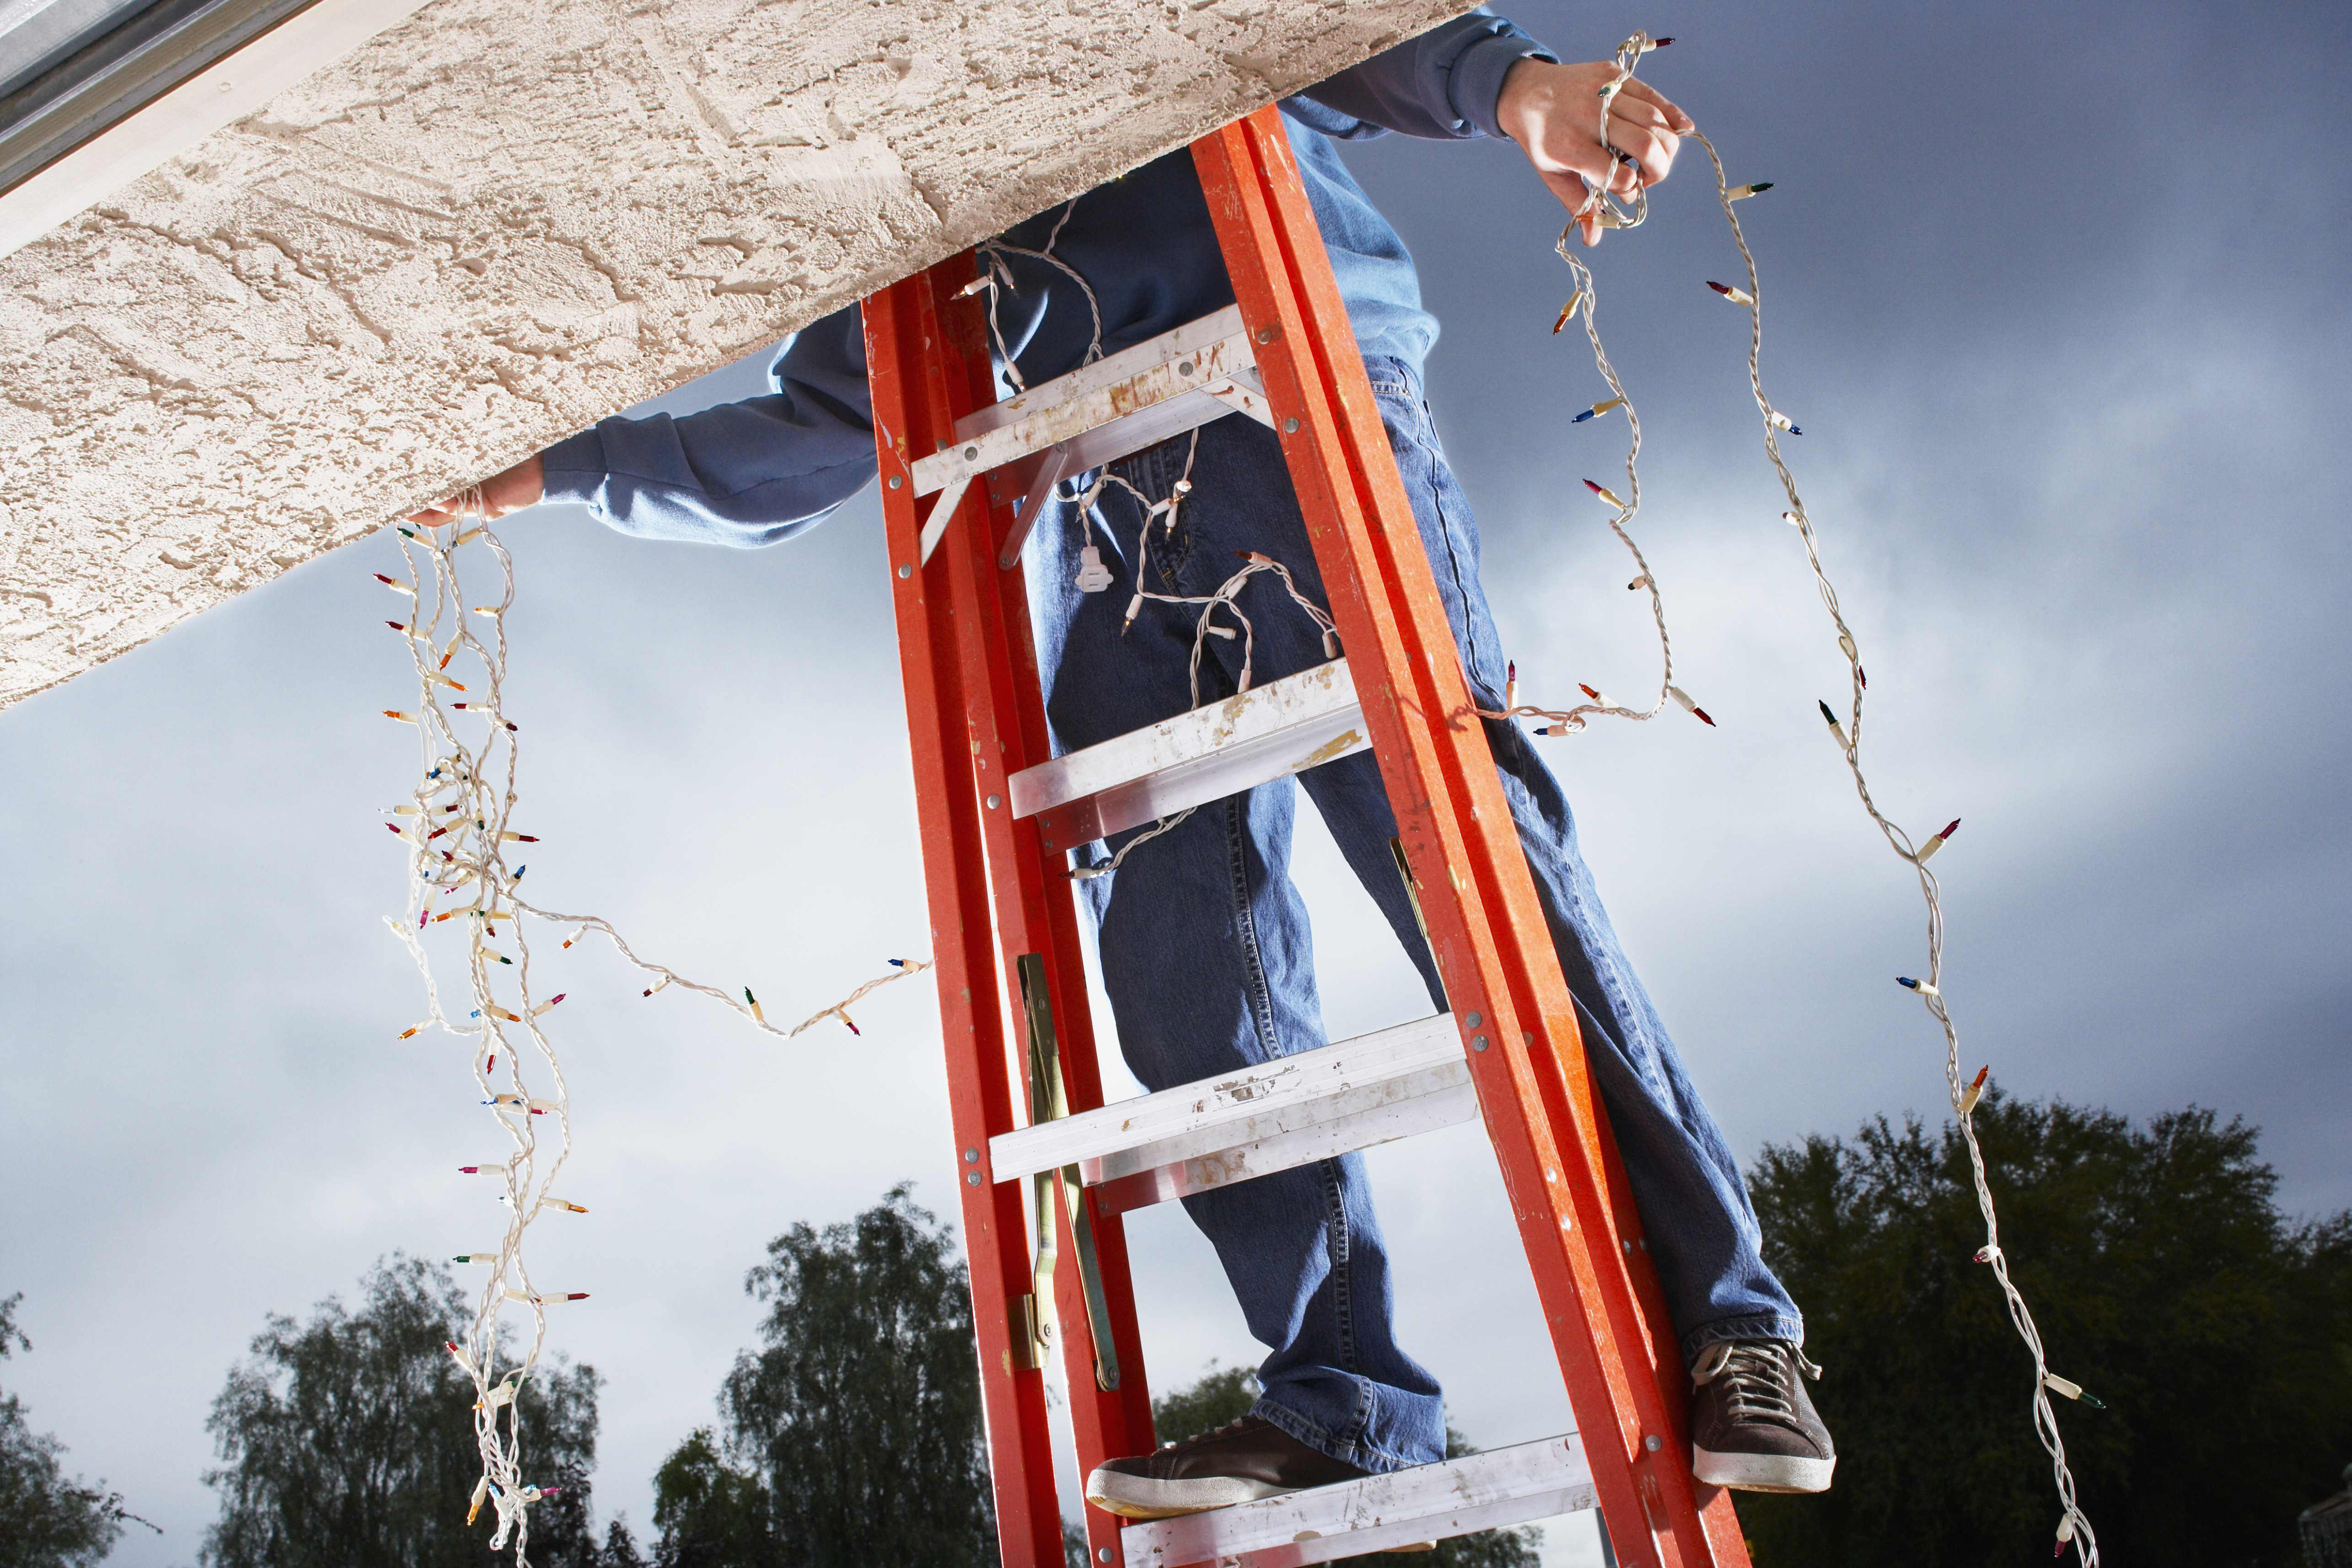 Ladder Safety How To Avoid Falls And Injuries